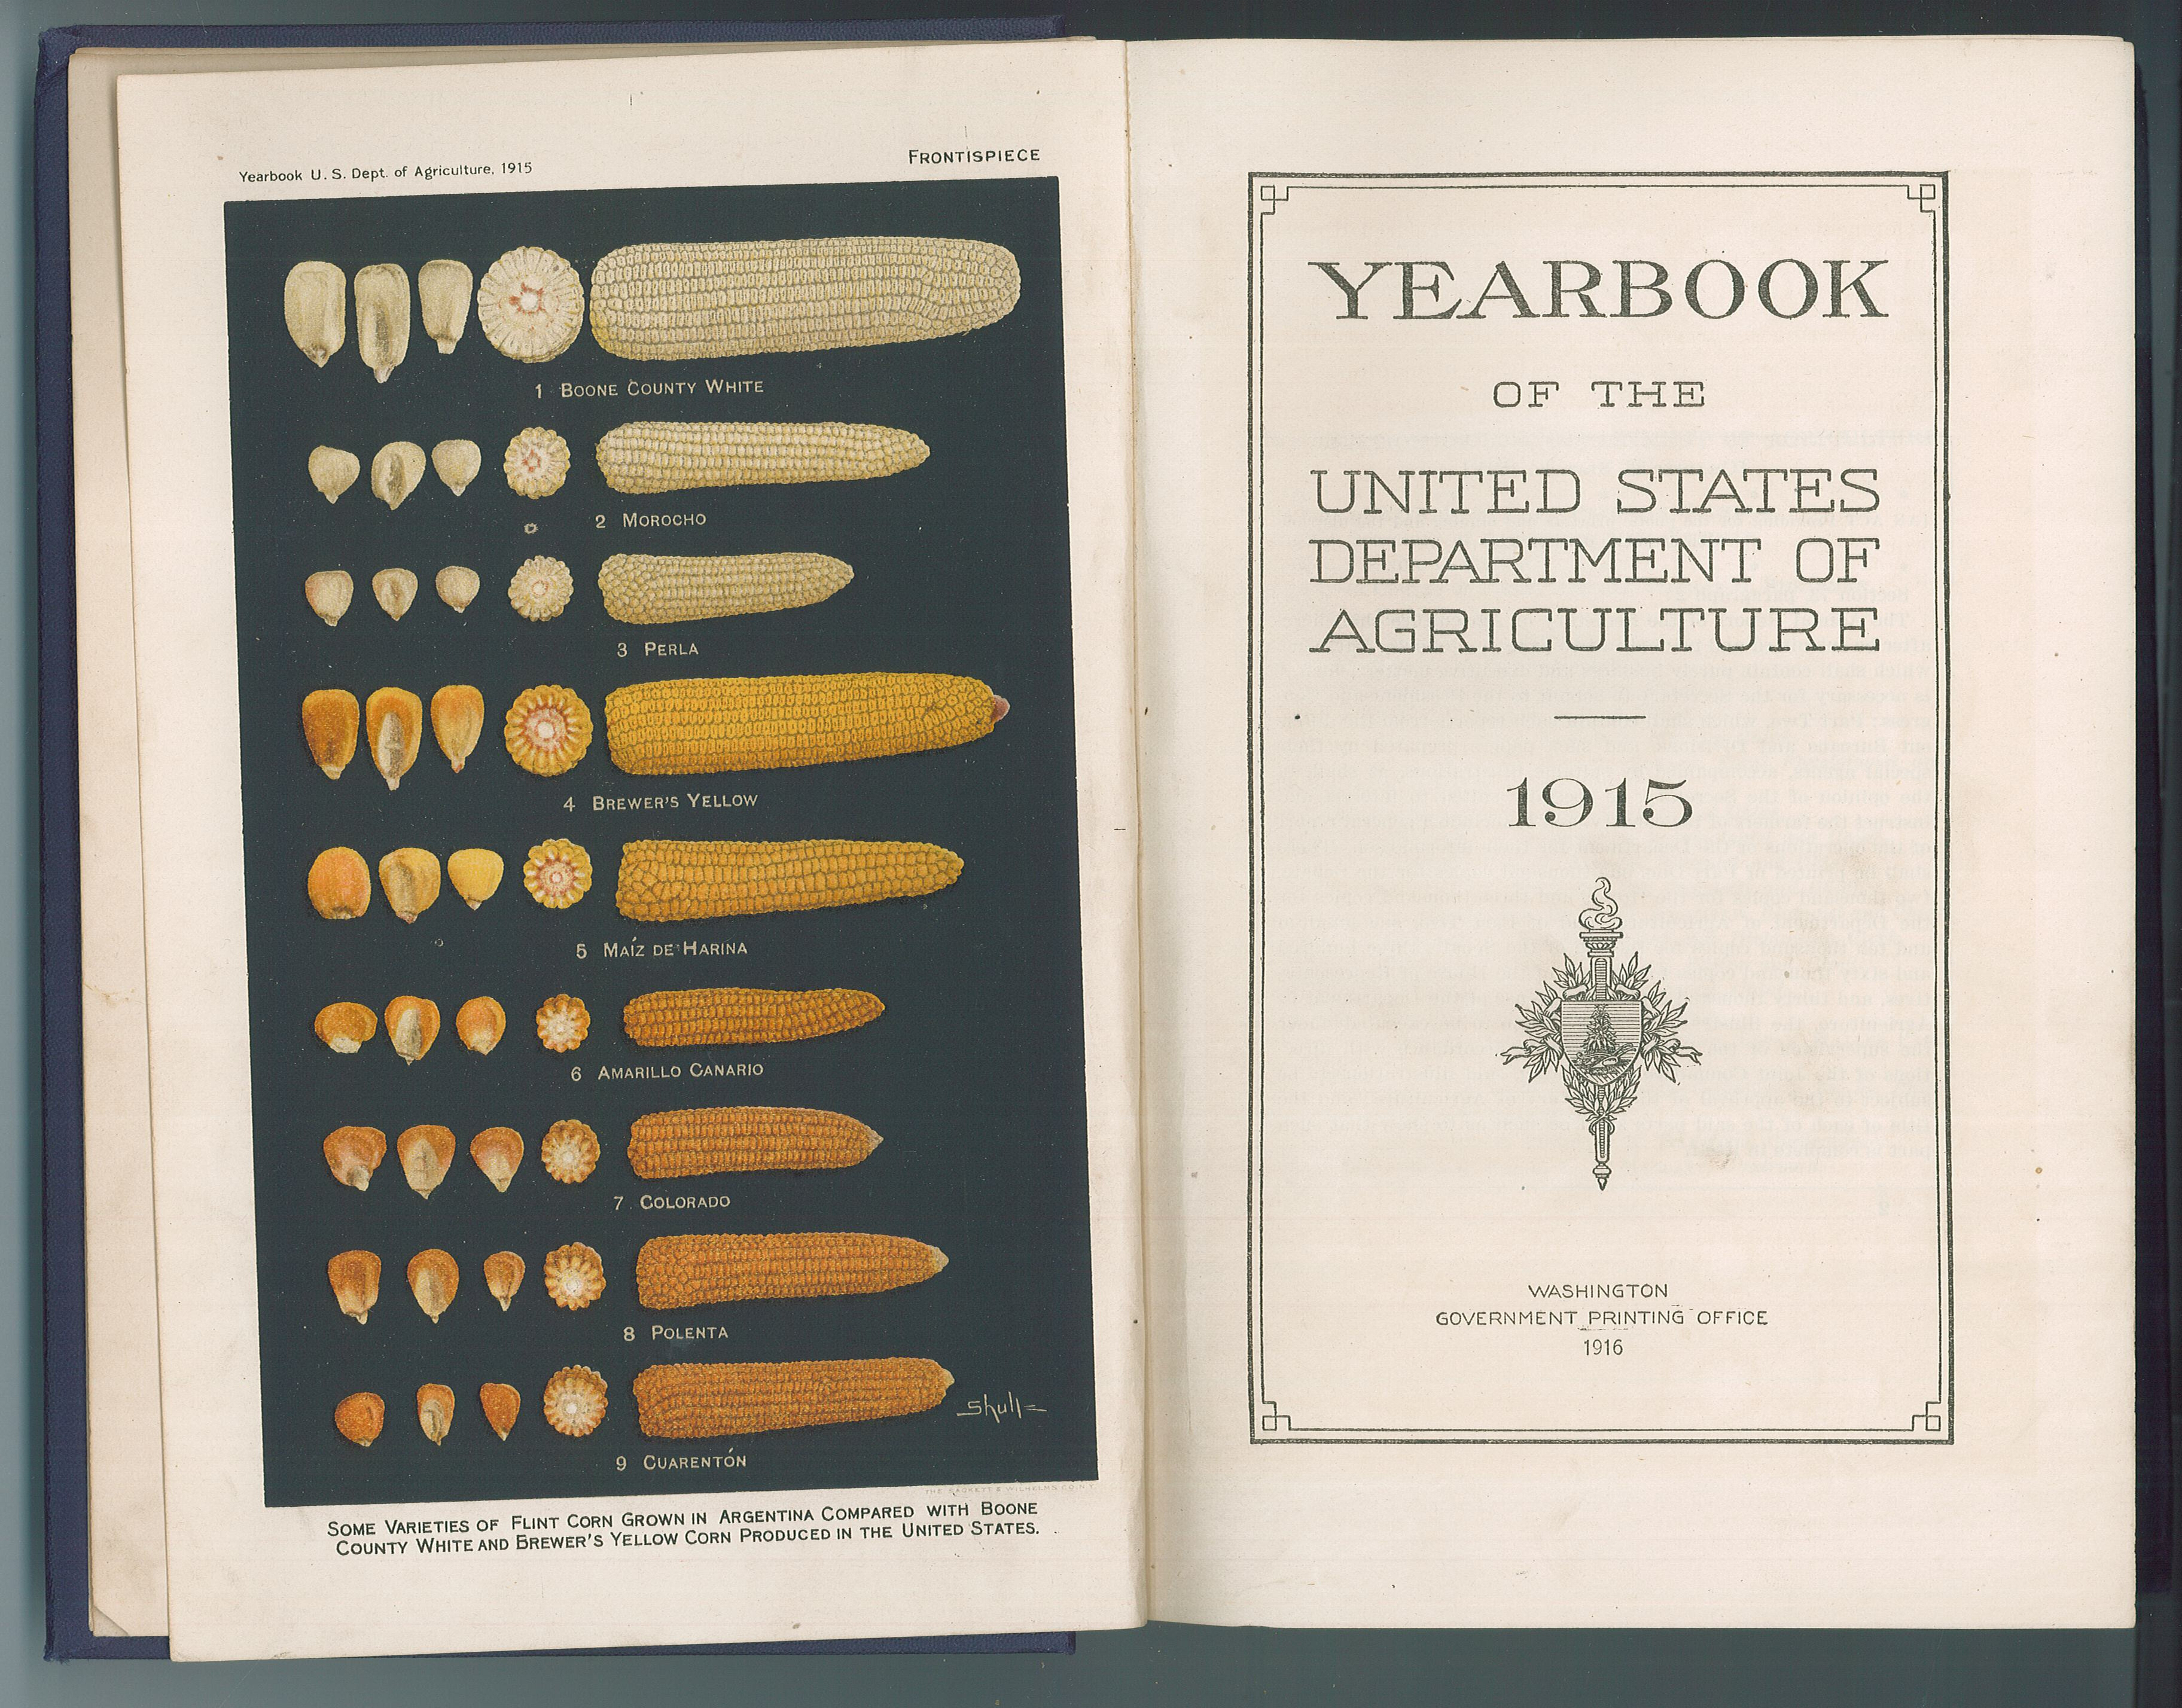 """Yearbook of the United States Department of Agriculture"" 1915, published by the Government Printing Office, Washington, D.C., 1916. The inside front cover of this book, which was donated by Verlaine M. Wright, is stamped ""C. A. Lindbergh, Representative, 6th Dist."" MCHS collections #2008.86.2."